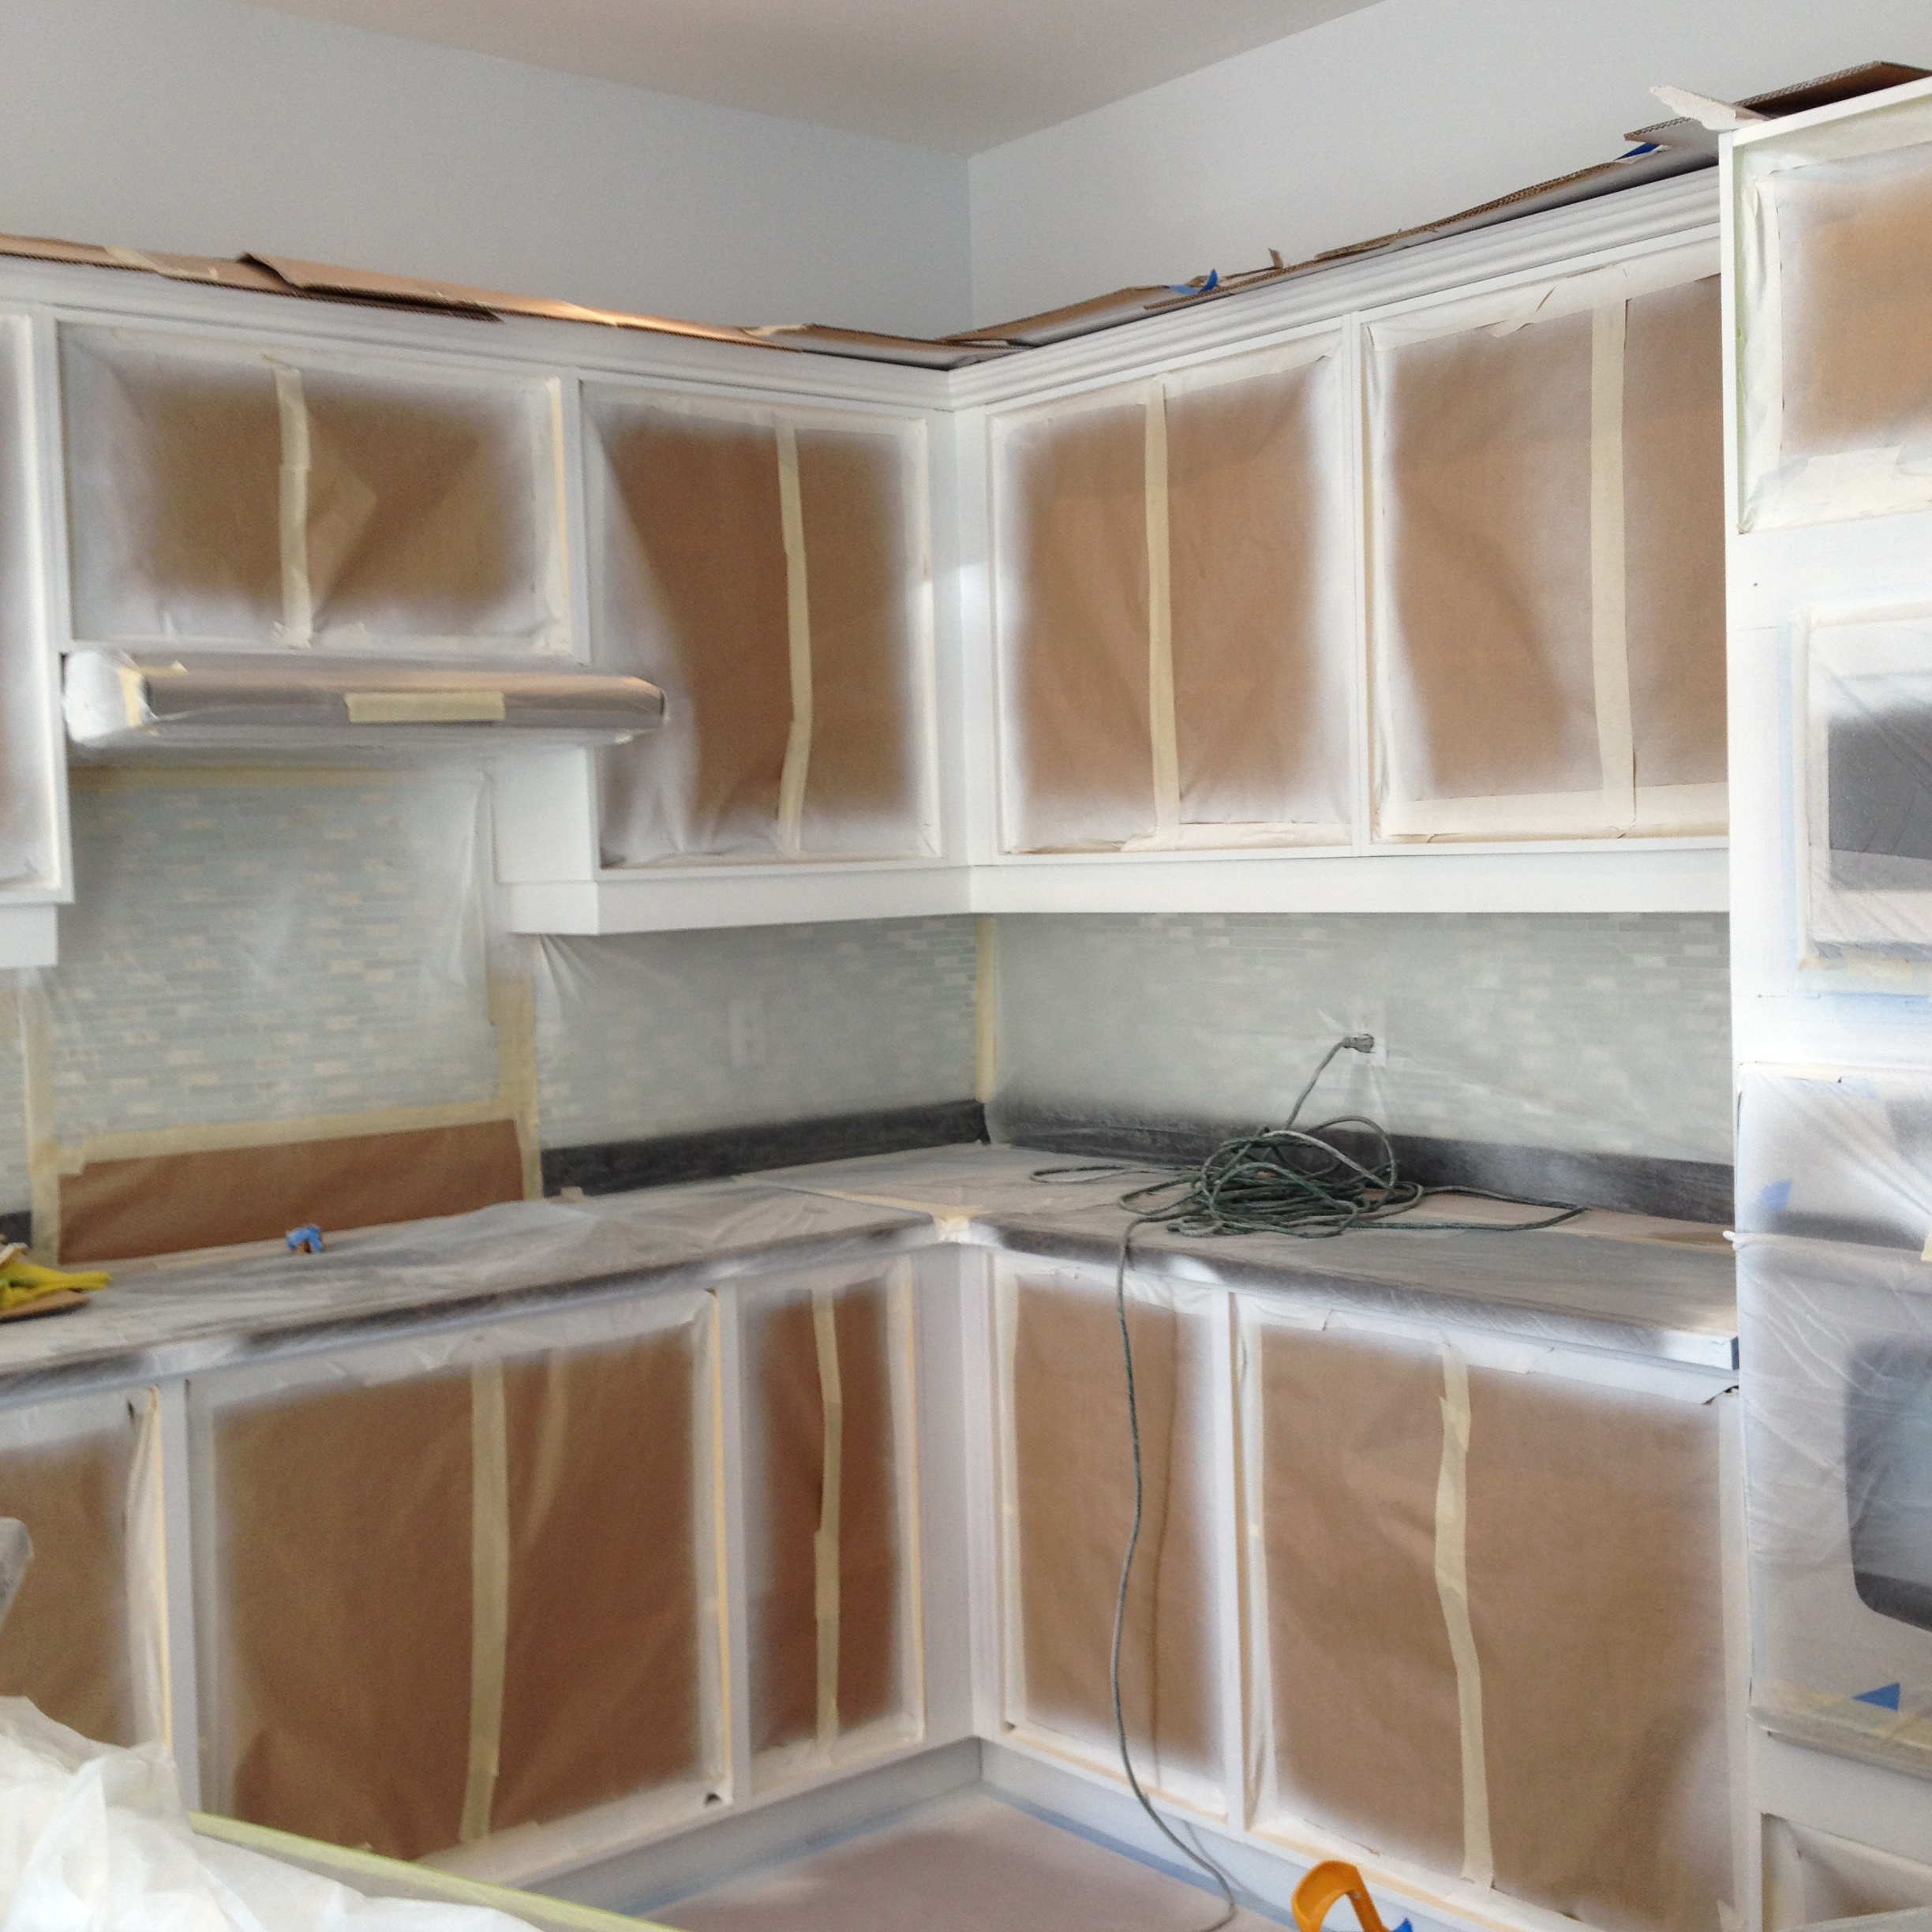 Permalink to Spray Painting Kitchen Cabinets